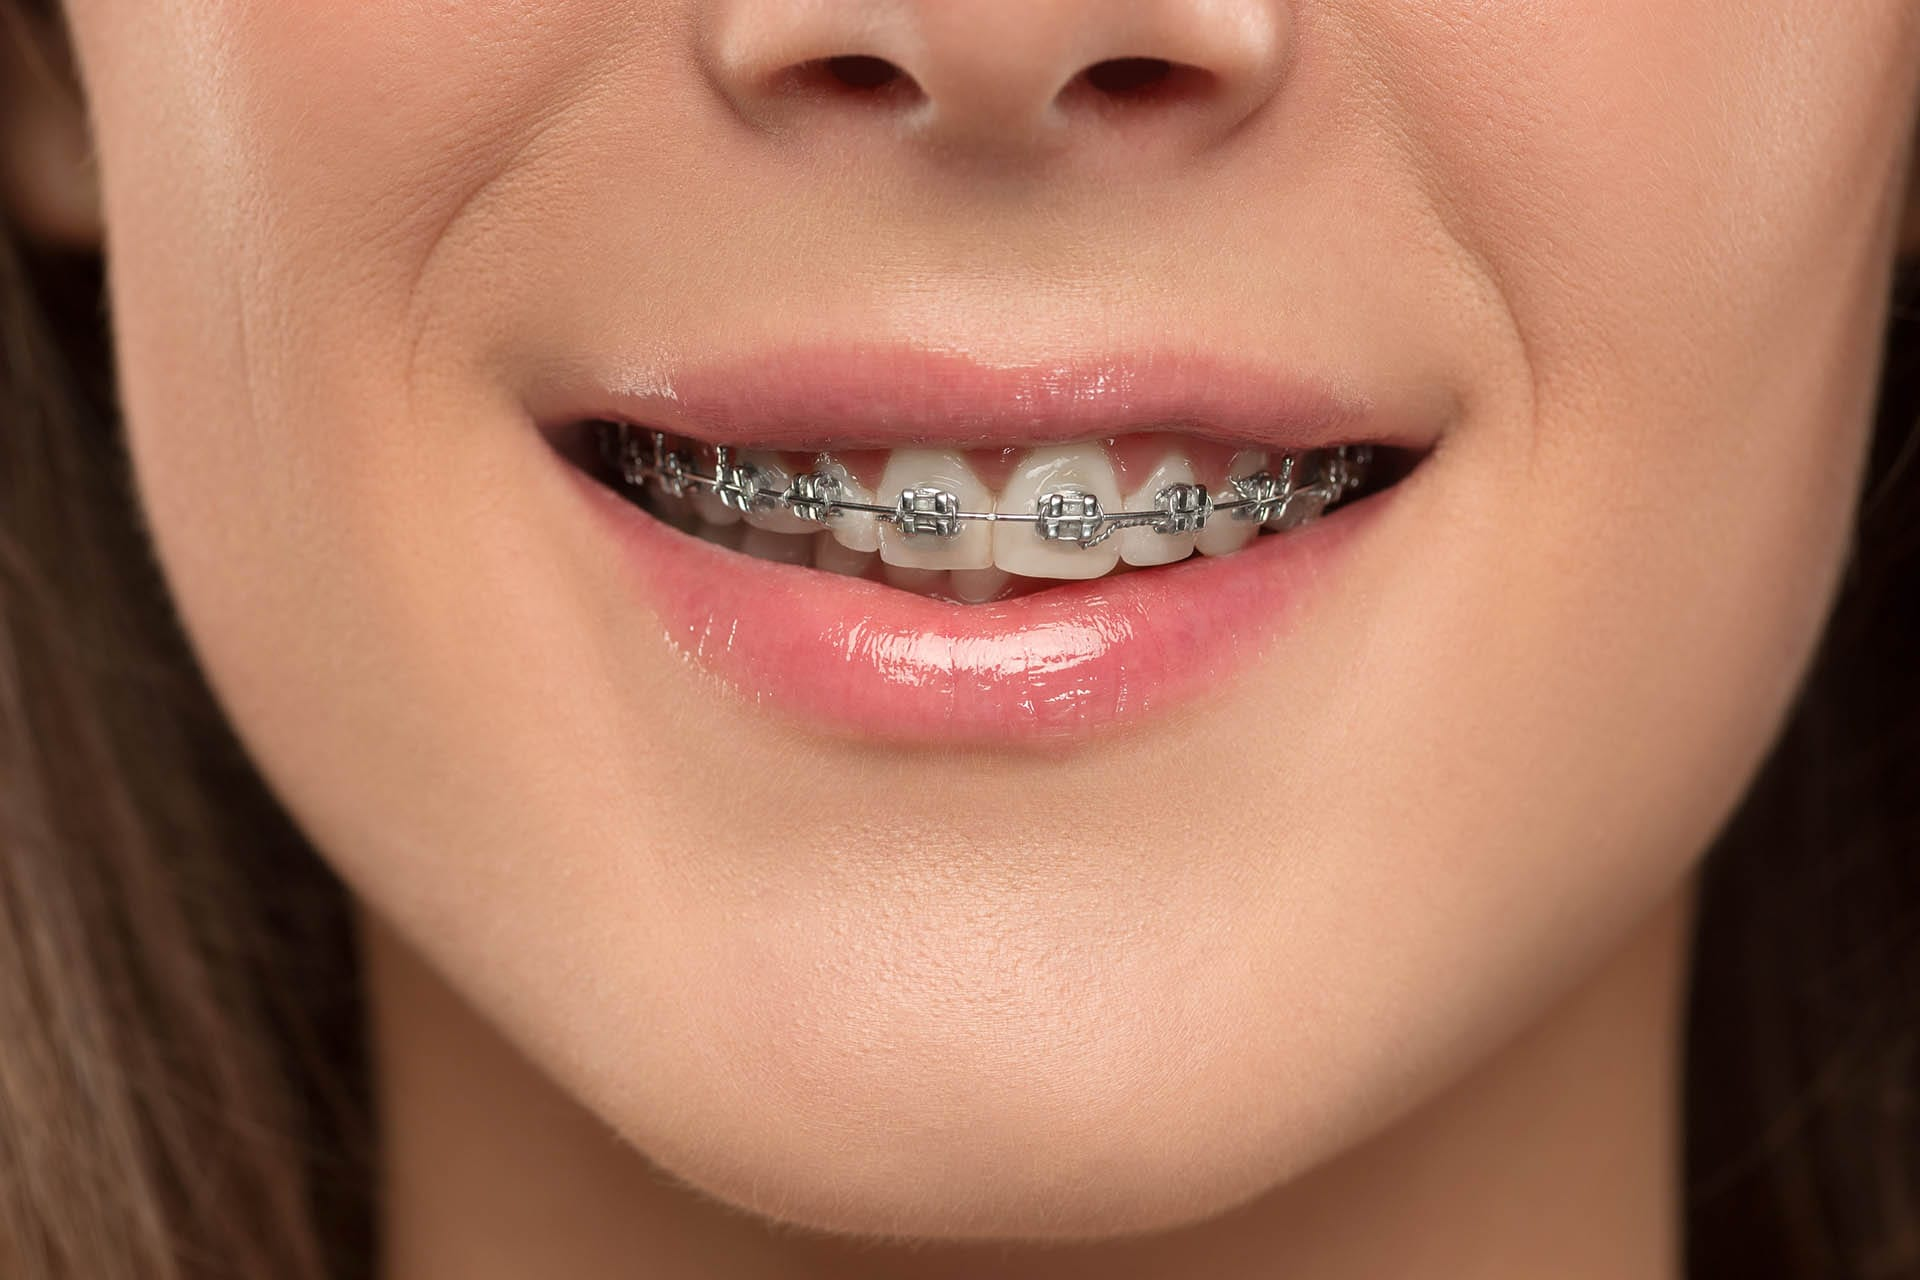 Teen girl wearing braces, a form of orthodontics